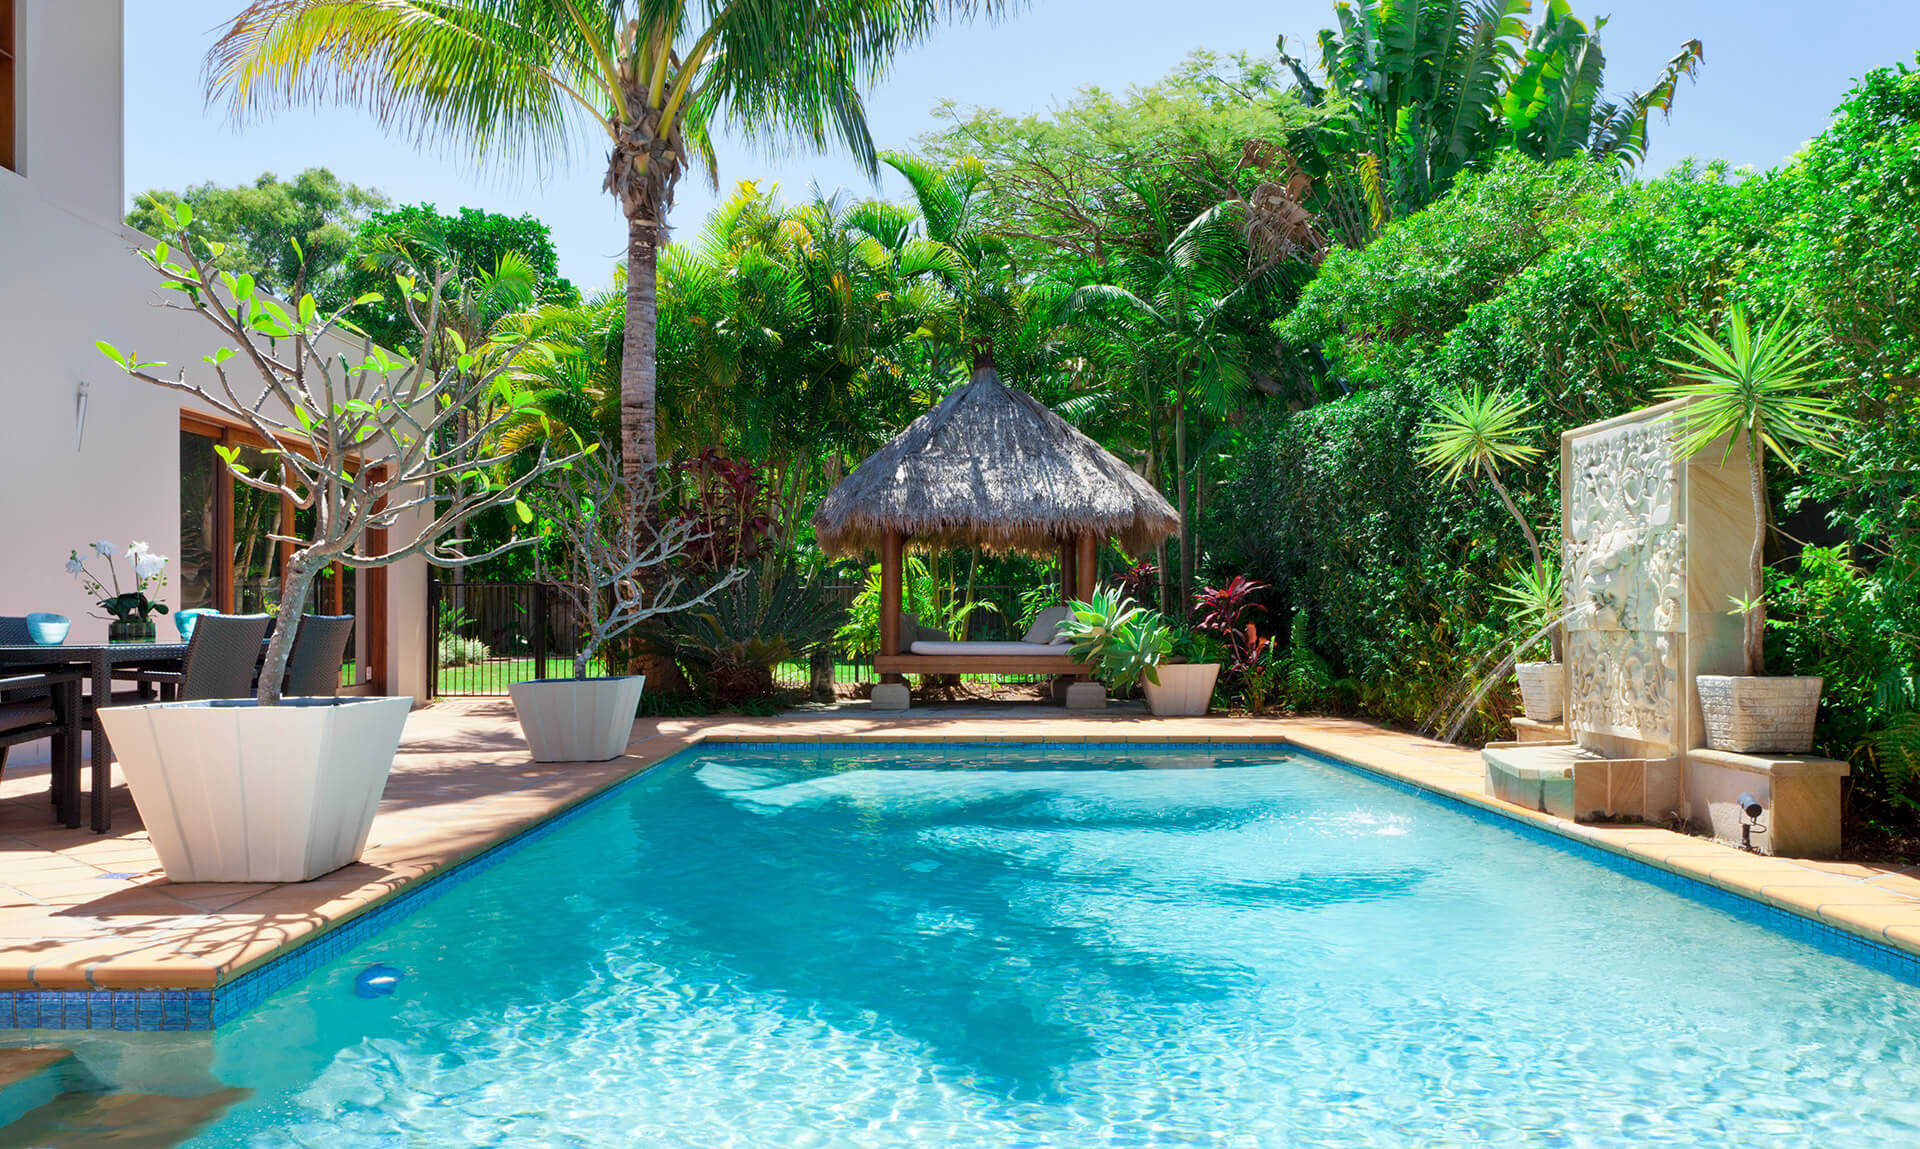 Tropical Swimming Pool Design Idea with Fountain